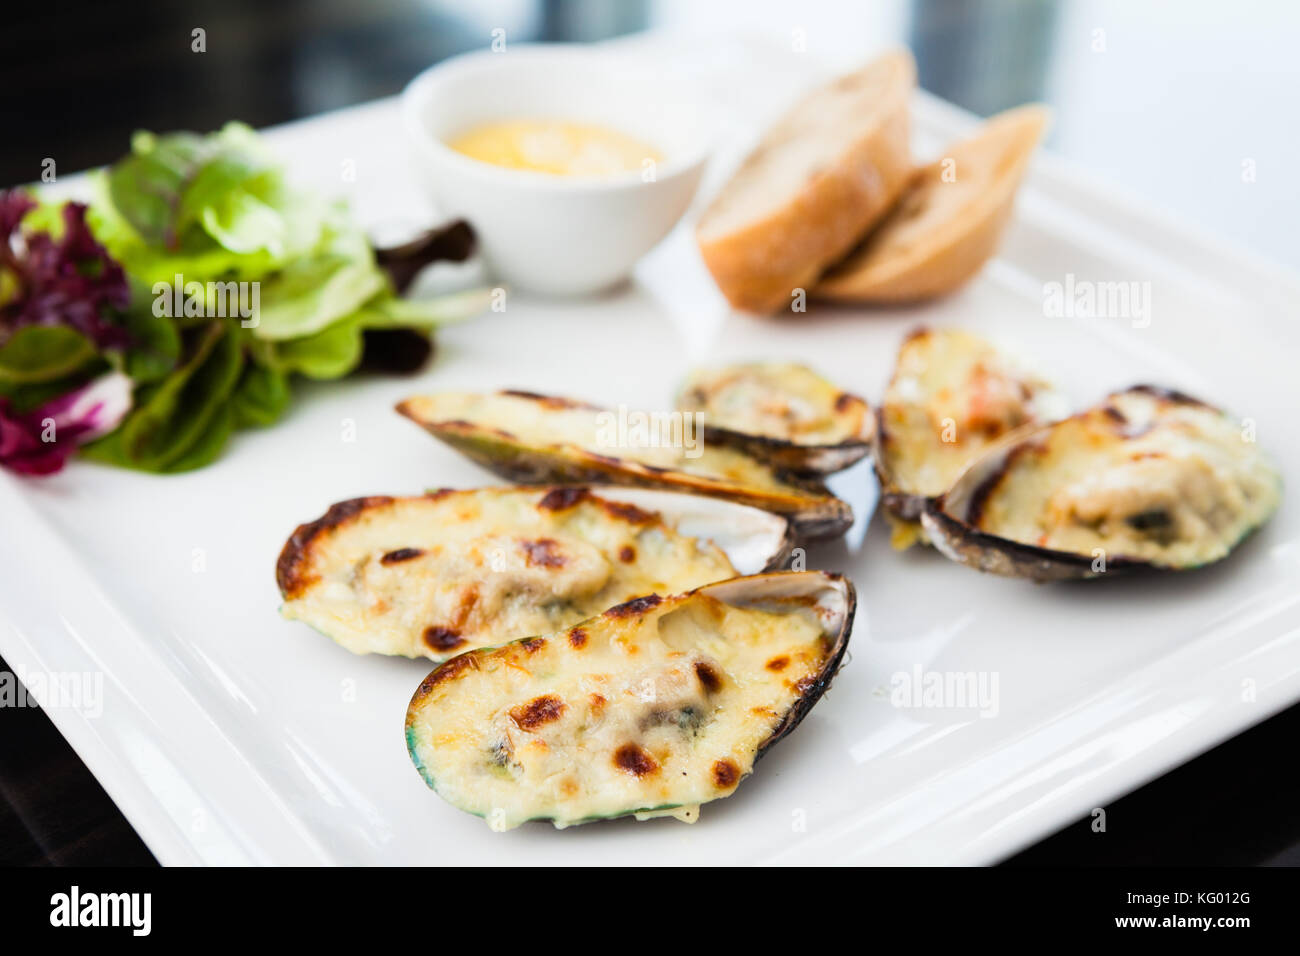 Baked mussels au gratin - Stock Image